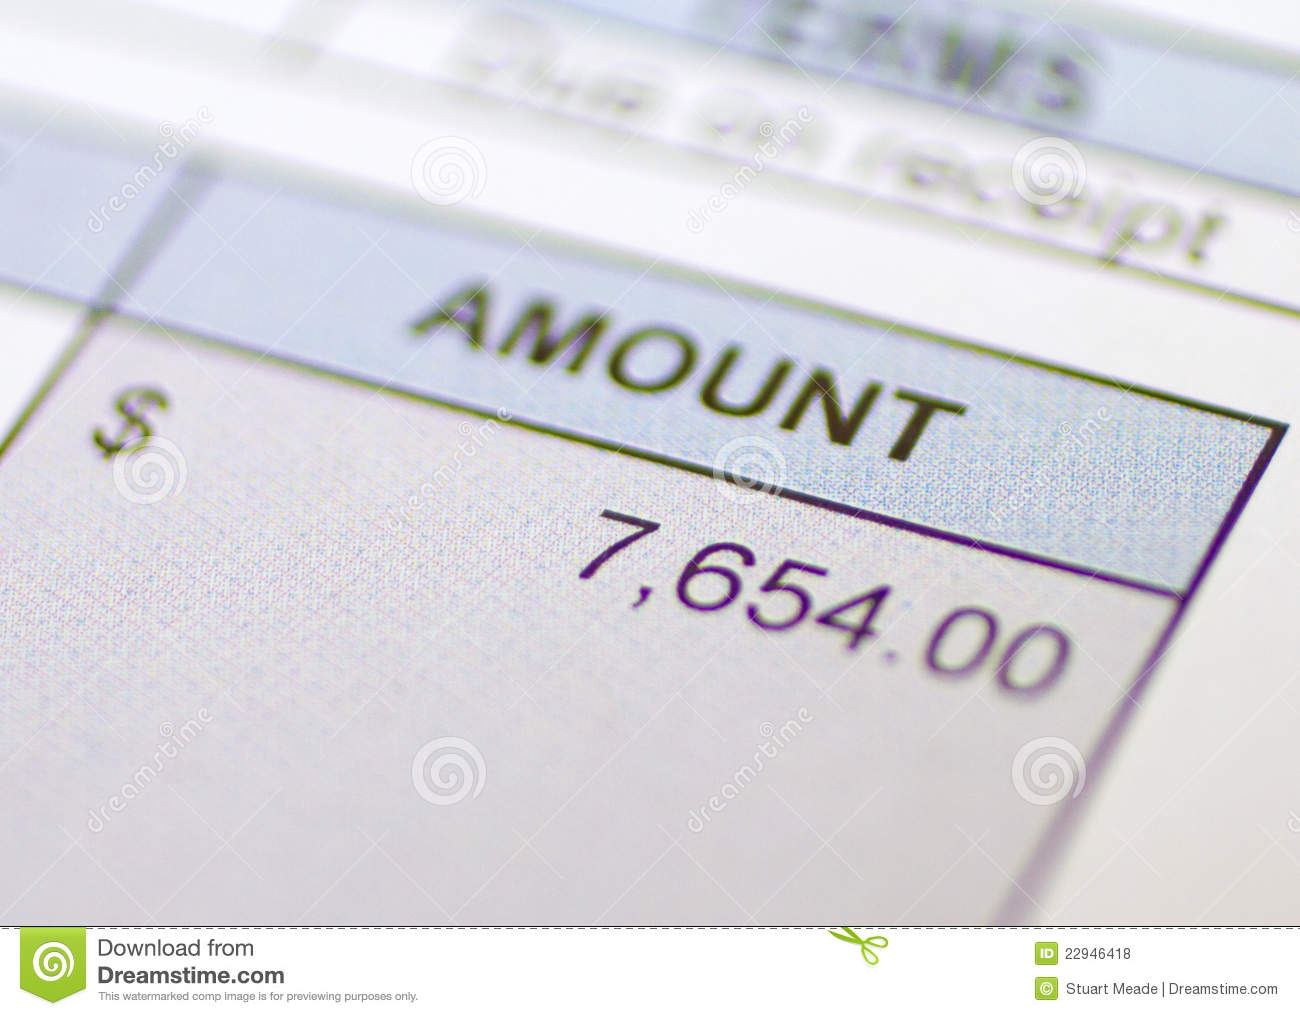 Bill Amount Owed Royalty Free Stock Photos - Image: 22946418